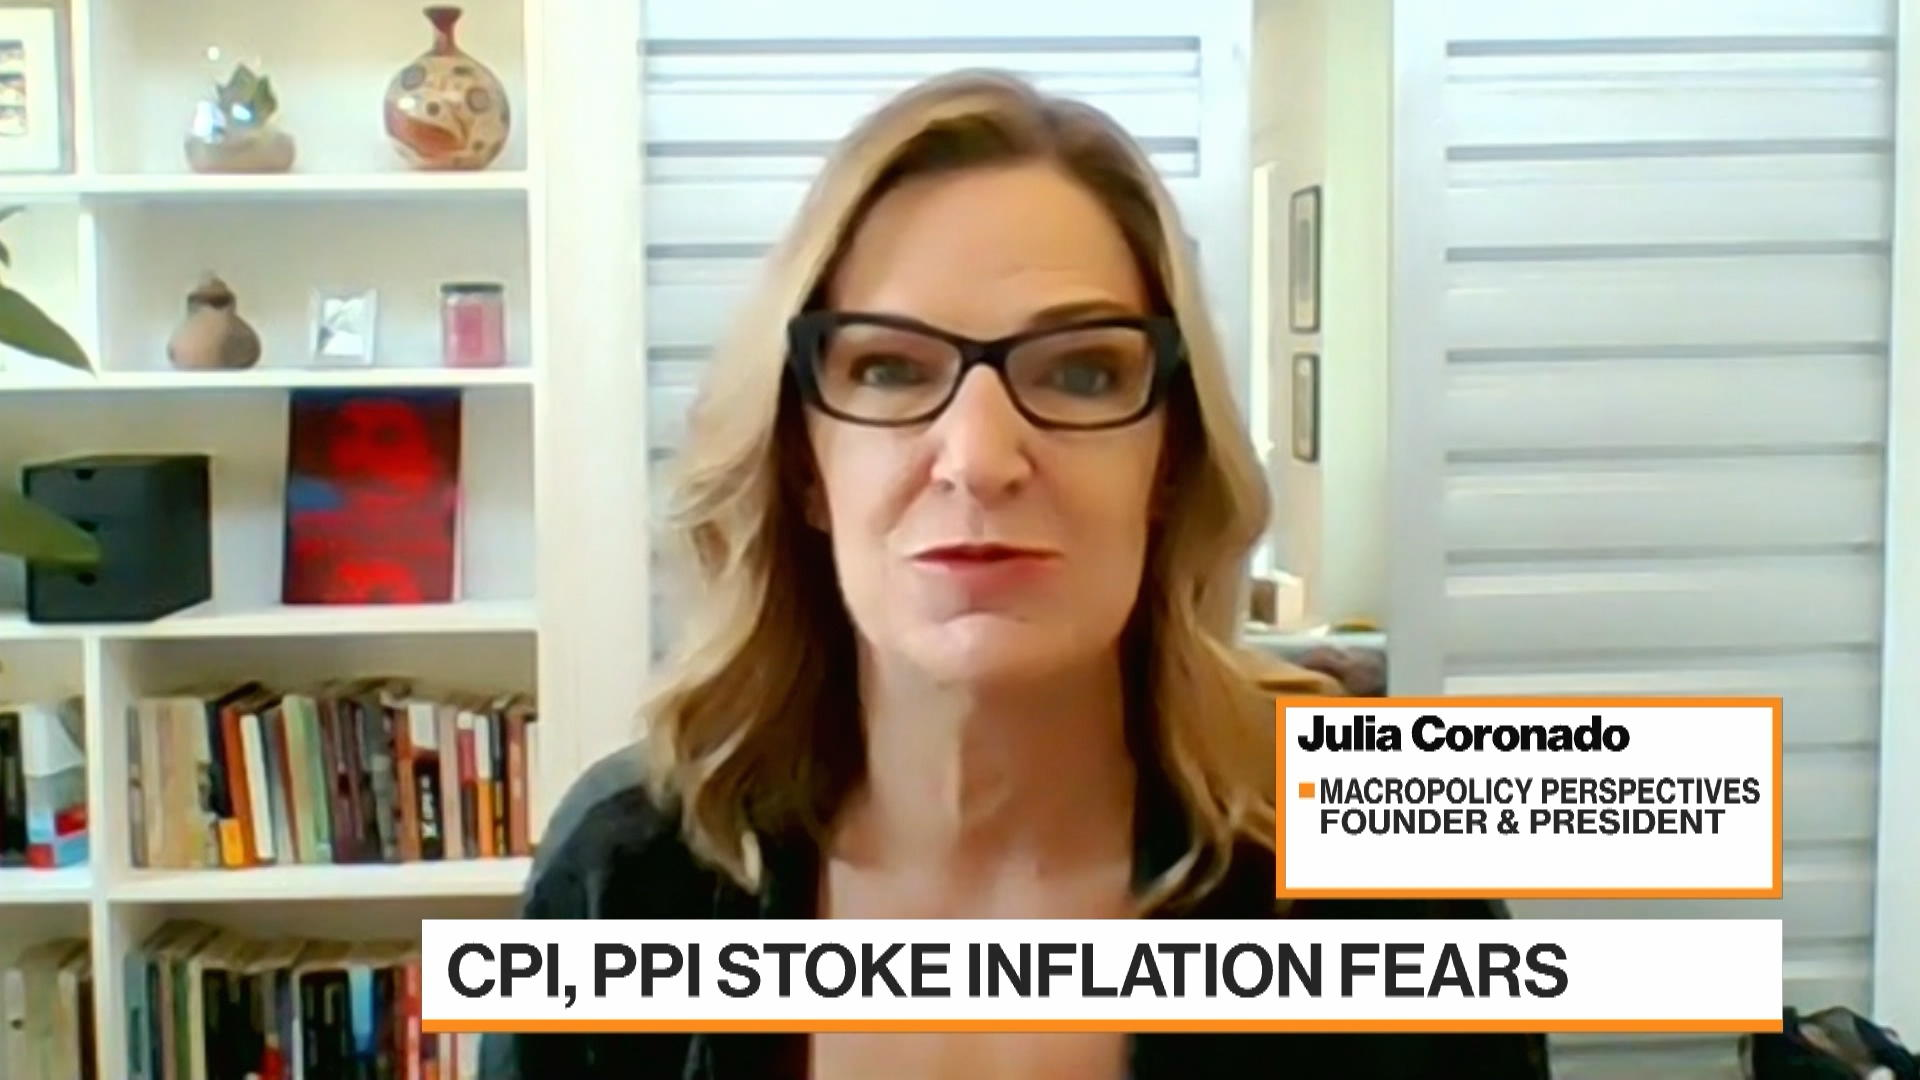 Macropolicy Perspectives Founder on Inflation Fears